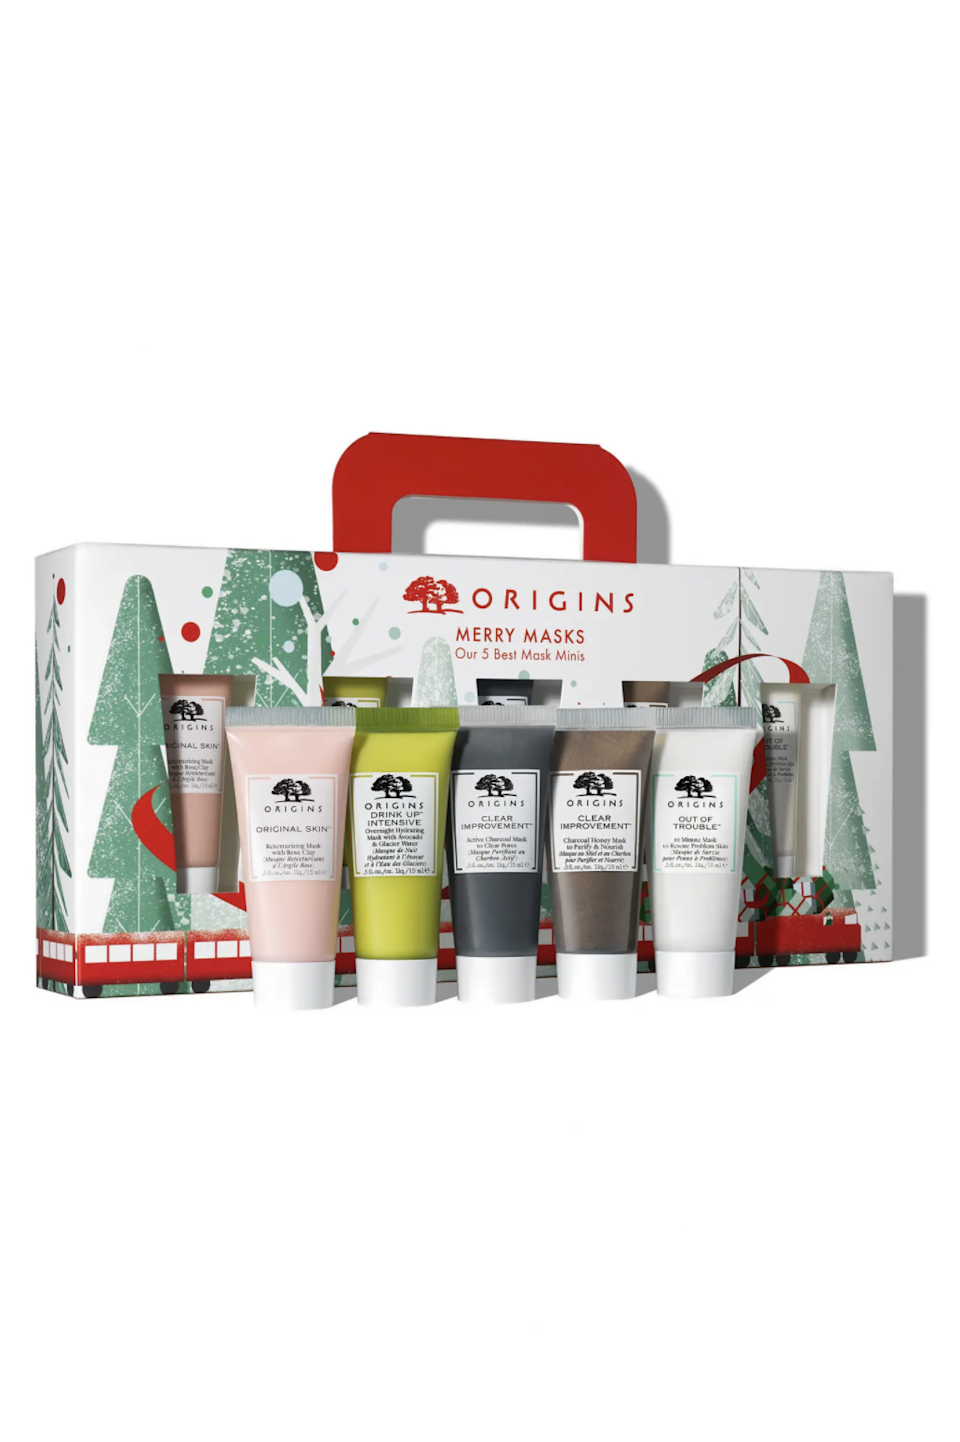 """<h2>Origins Merry Masks Travel Size Face Mask Set</h2><br>Skip the trip to the spa and stay home with this five-piece set of mini masks, ranging from hydrating to clarifying.<br><br><strong>Origins</strong> Merry Masks Travel Size Face Mask Set, $, available at <a href=""""https://go.skimresources.com/?id=30283X879131&url=https%3A%2F%2Fwww.nordstrom.com%2Fs%2Forigins-merry-masks-travel-size-face-mask-set-usd-30-value%2F6440206"""" rel=""""nofollow noopener"""" target=""""_blank"""" data-ylk=""""slk:Nordstrom"""" class=""""link rapid-noclick-resp"""">Nordstrom</a>"""